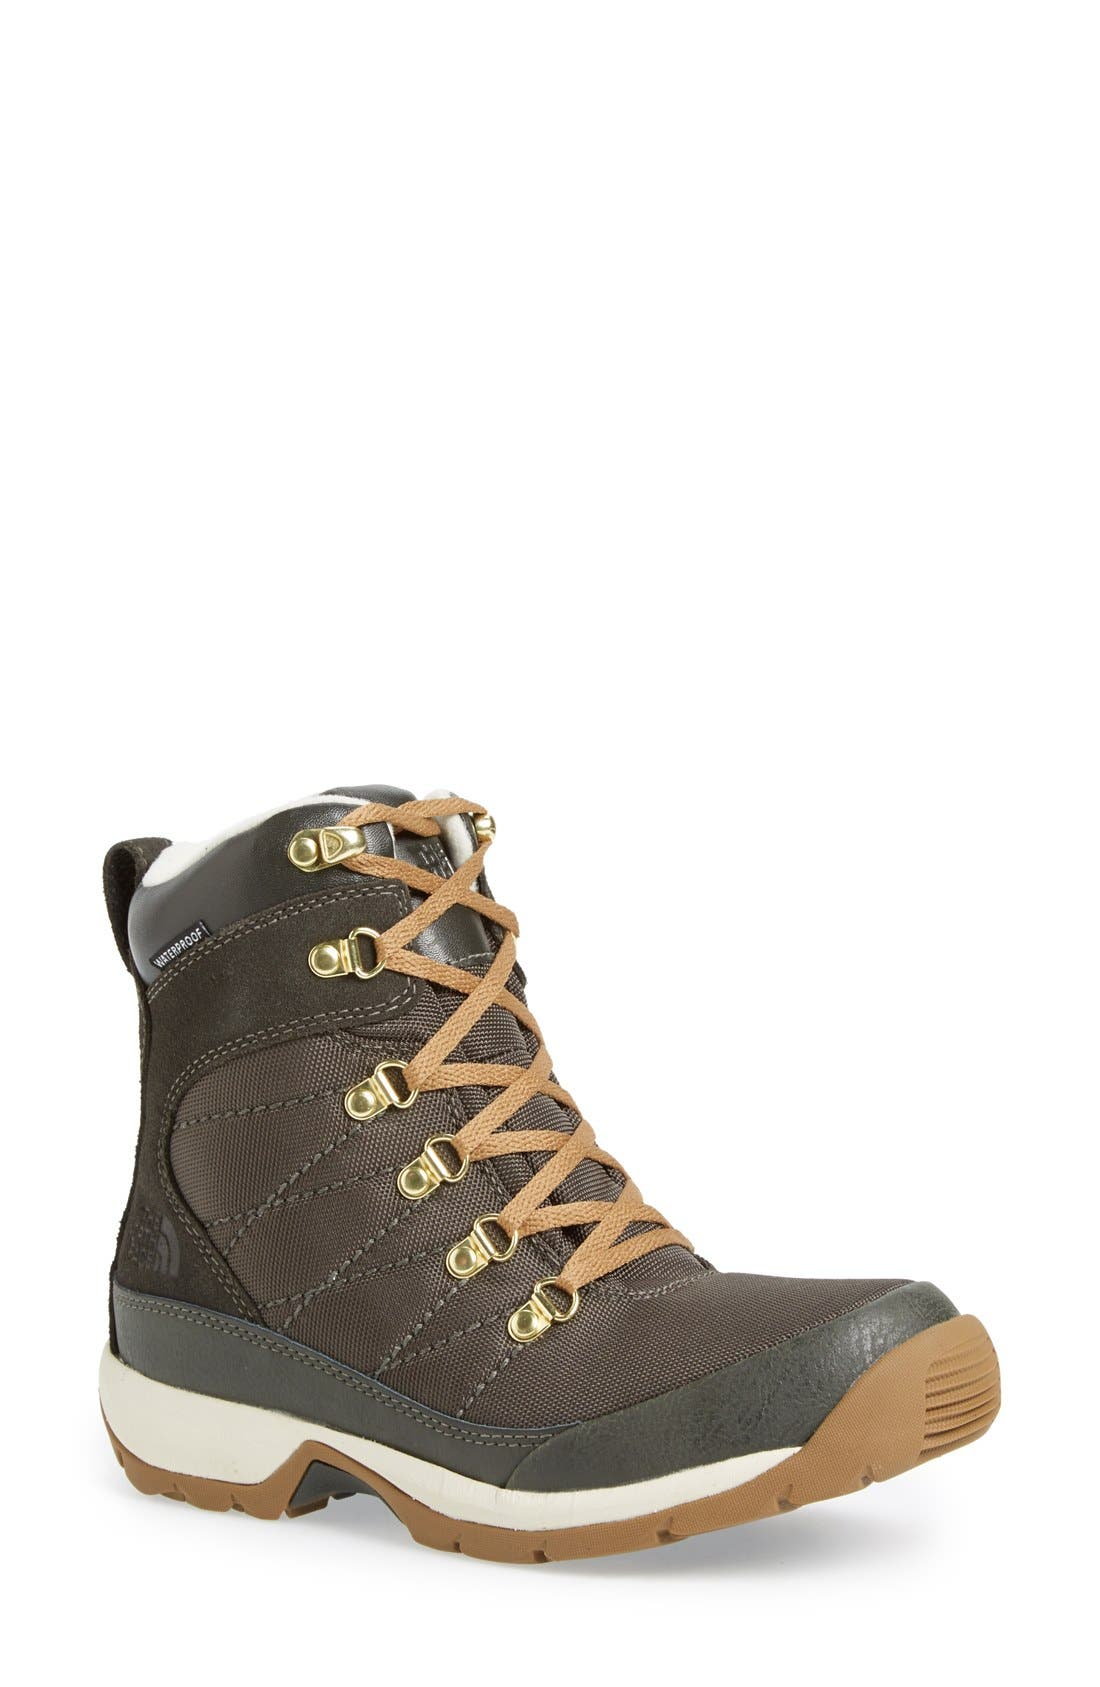 Main Image - The North Face 'Chilkat II' Boot